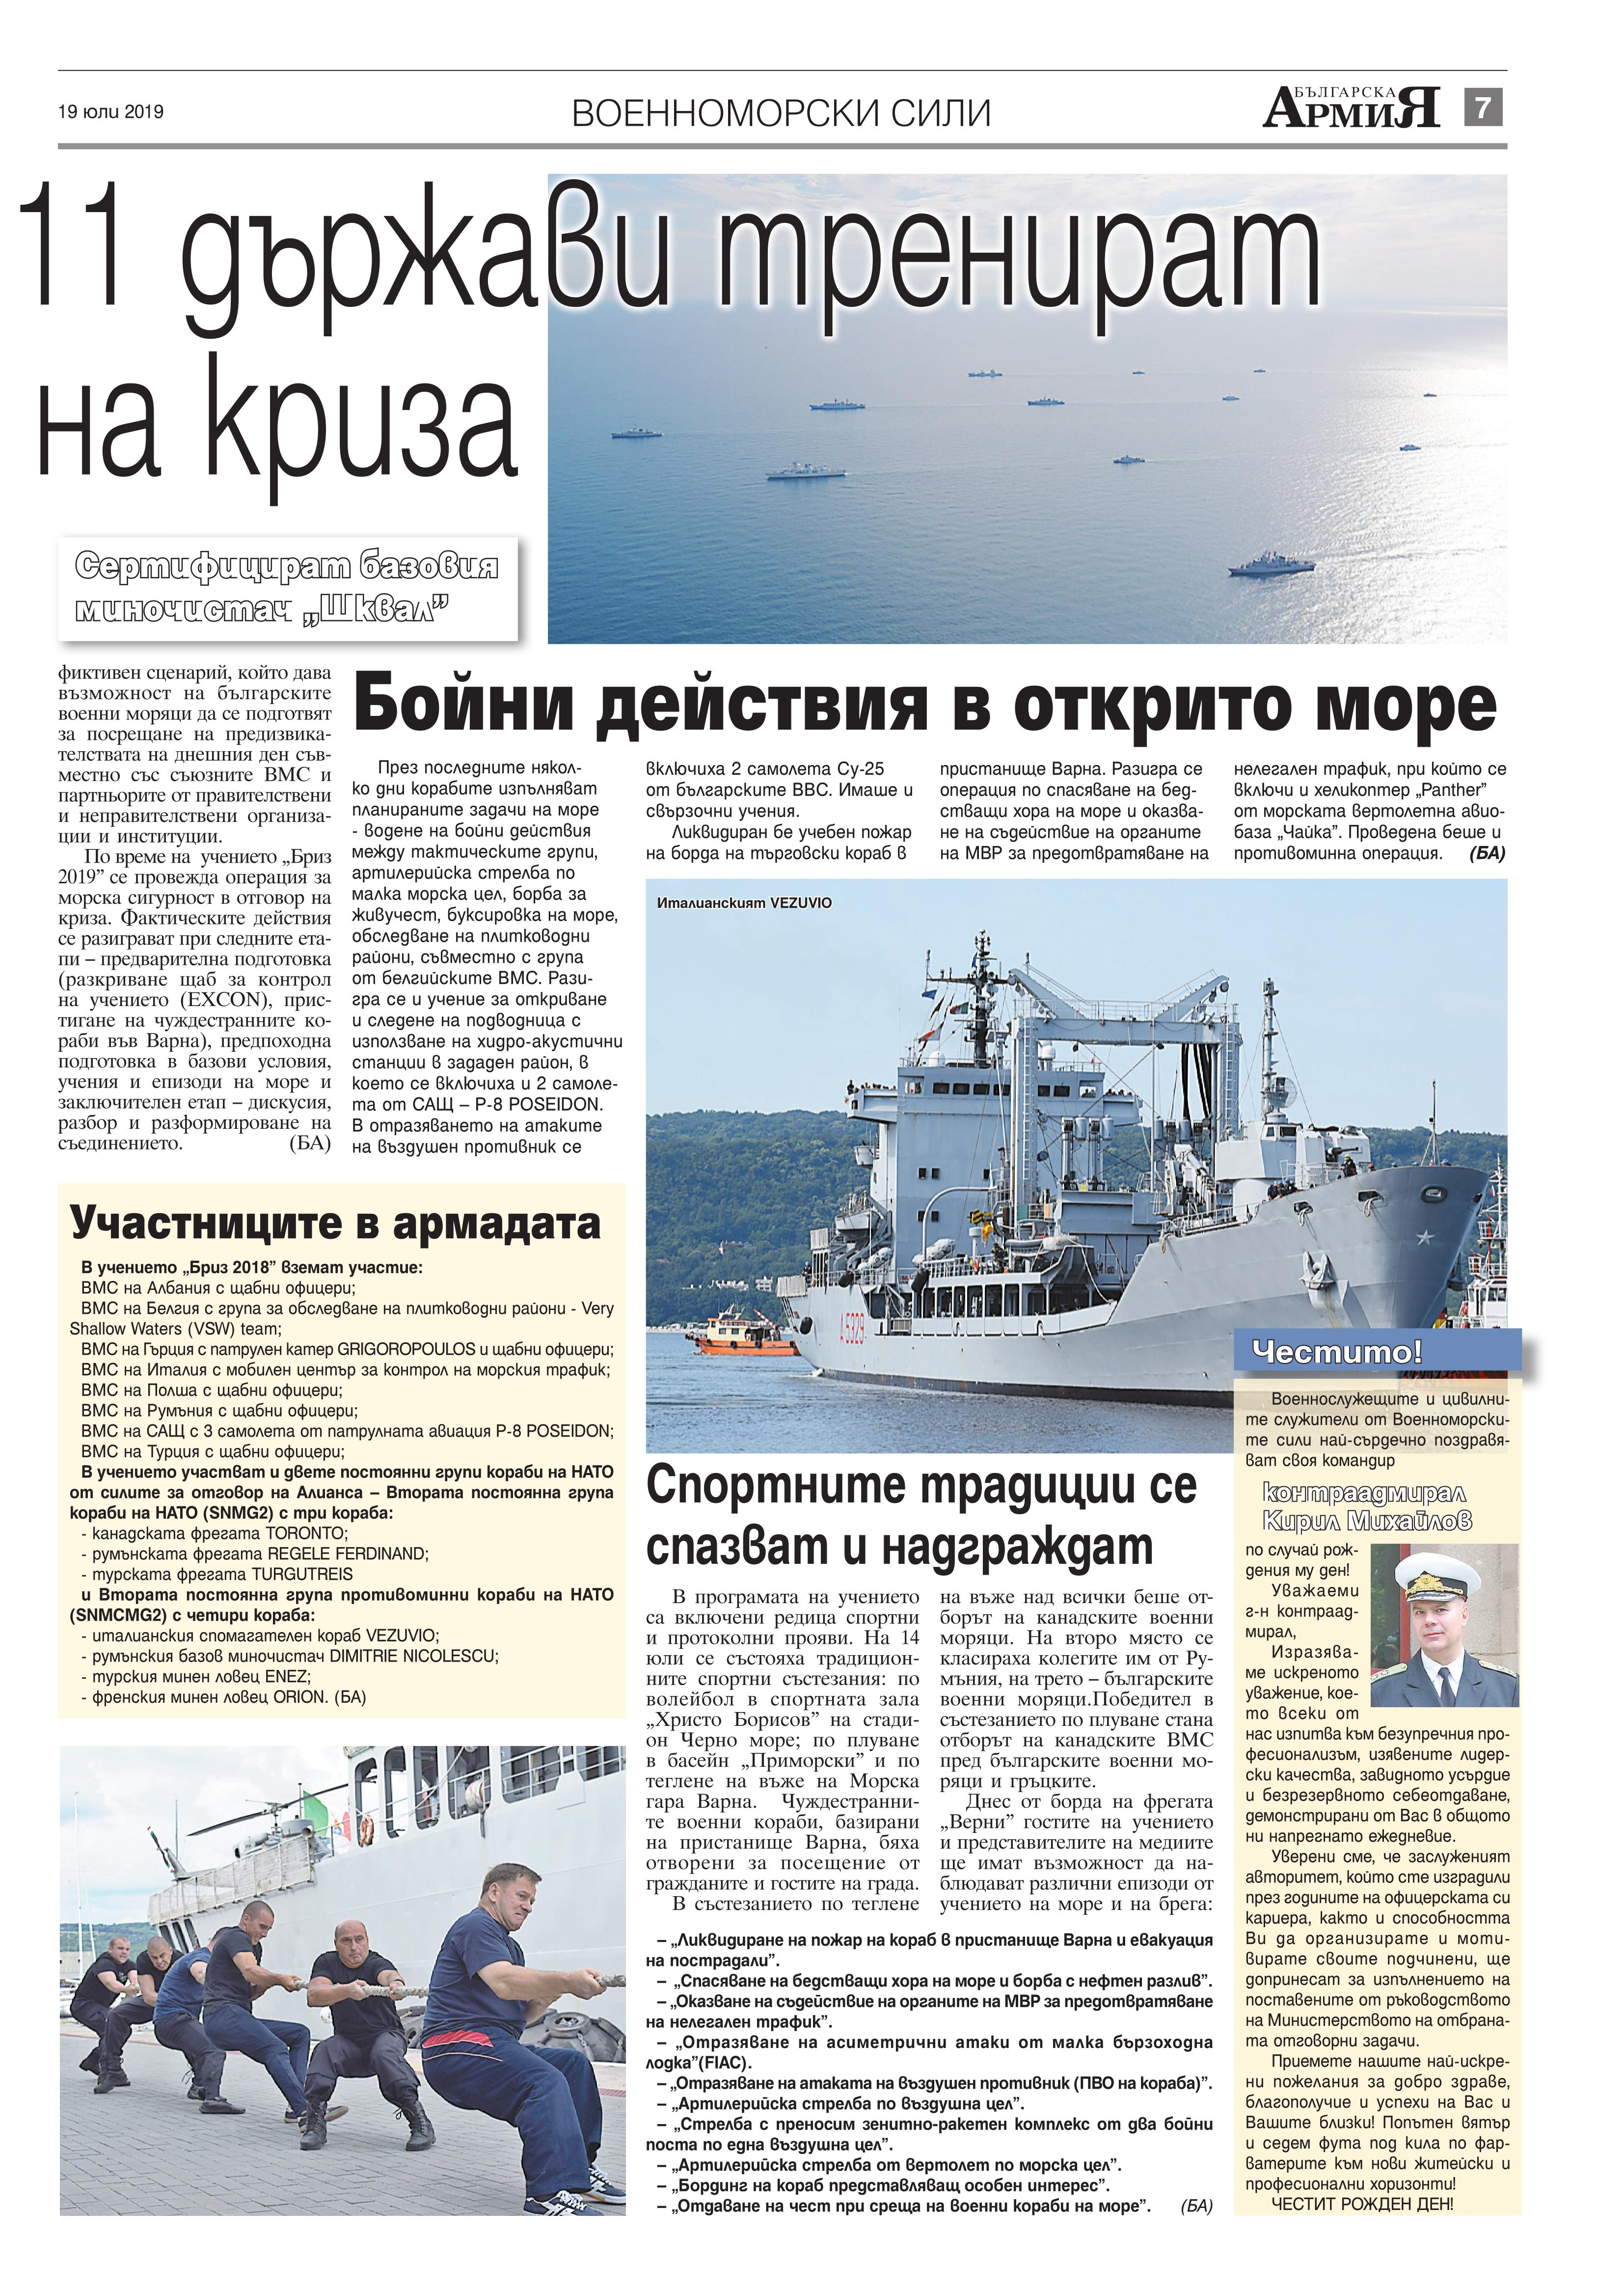 https://www.armymedia.bg/wp-content/uploads/2015/06/07.page1_-100.jpg